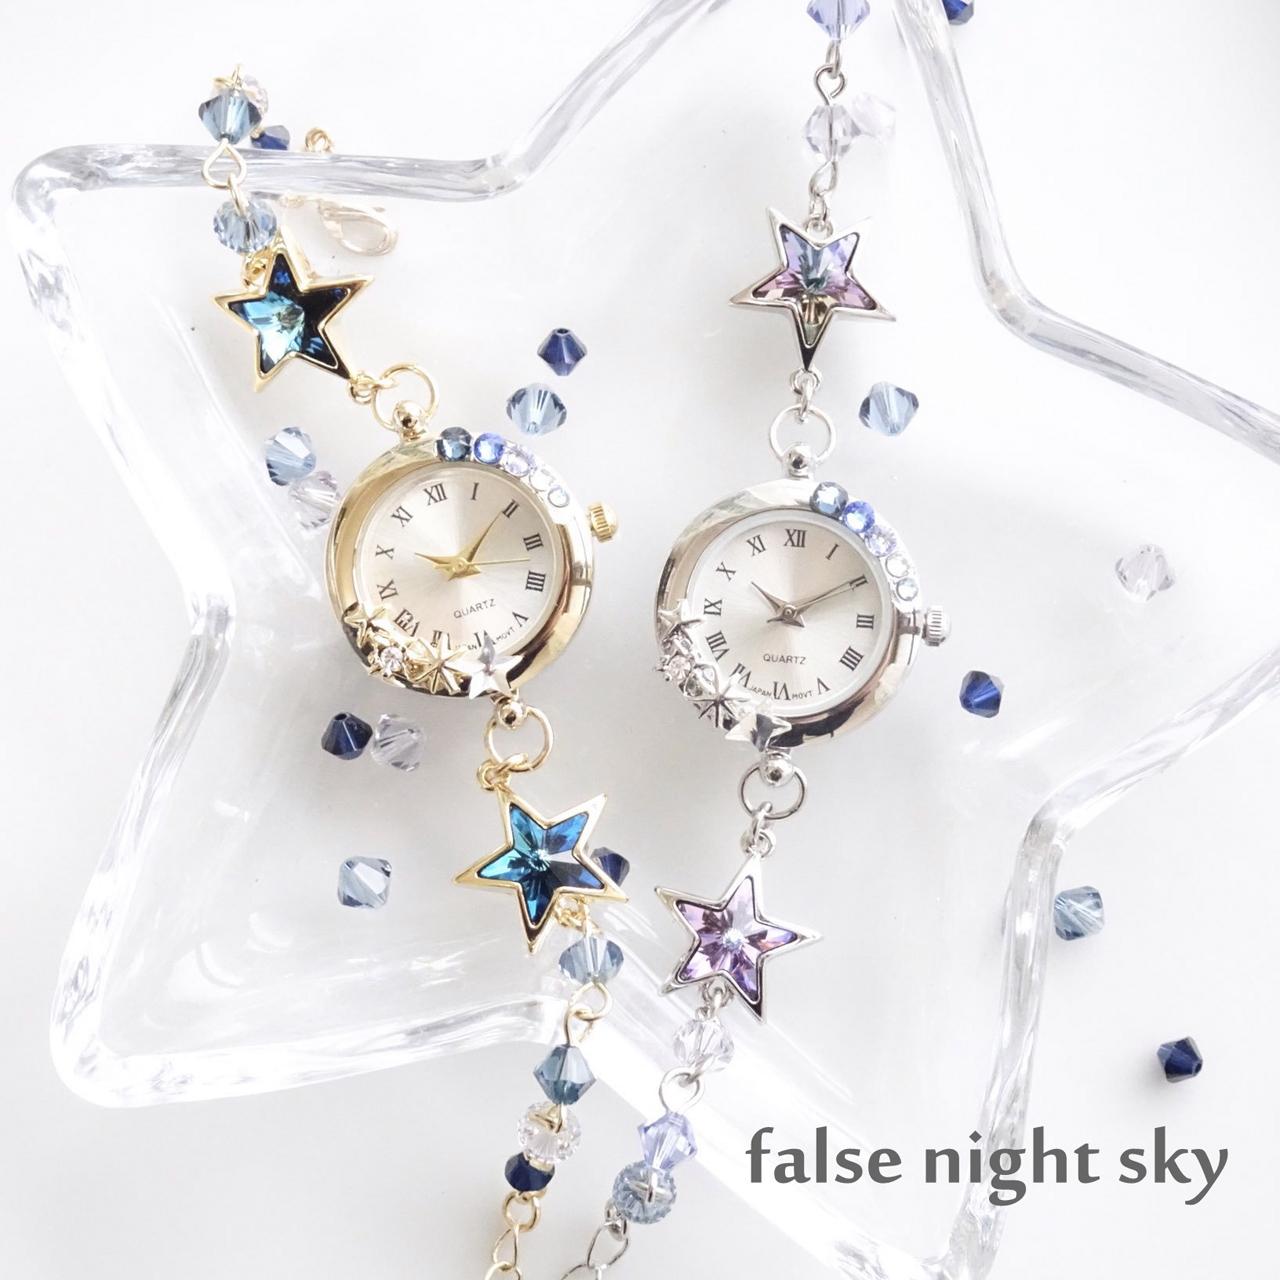 false night sky